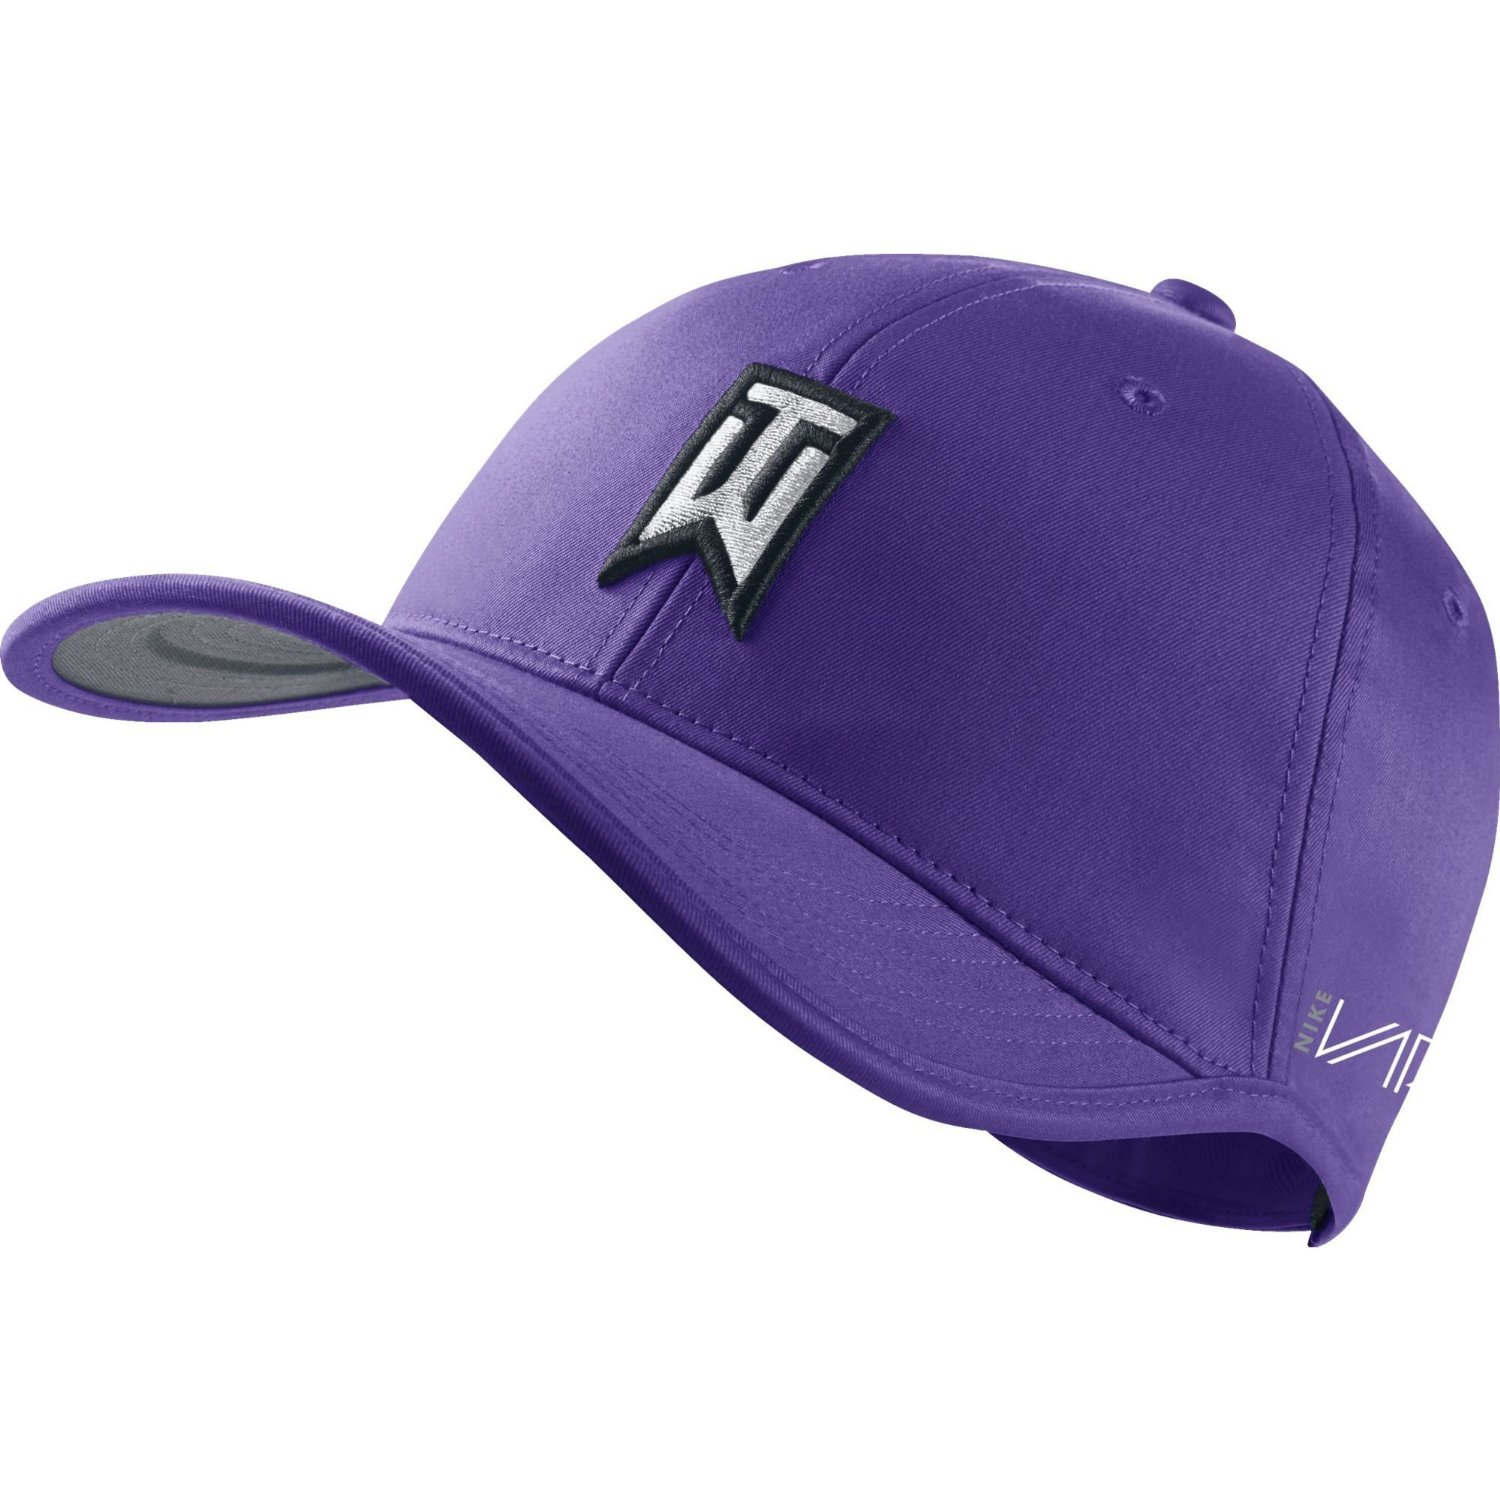 f155667bce7 NEW Nike Tiger Woods Ultralight RZN Vapor Purple Adjustable Hat Cap